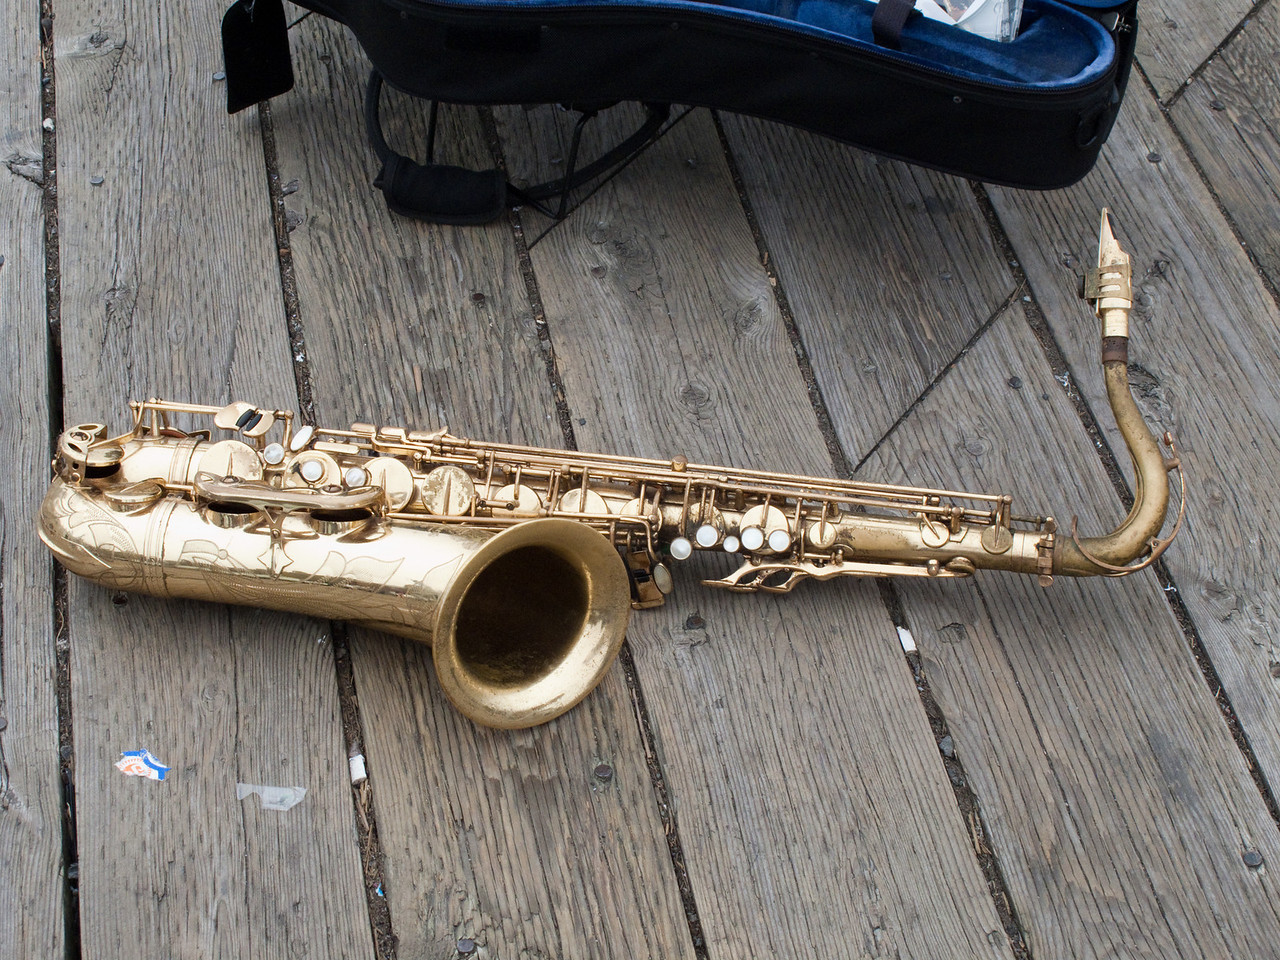 Sax left sitting idle by owner at the dock in Halifax.